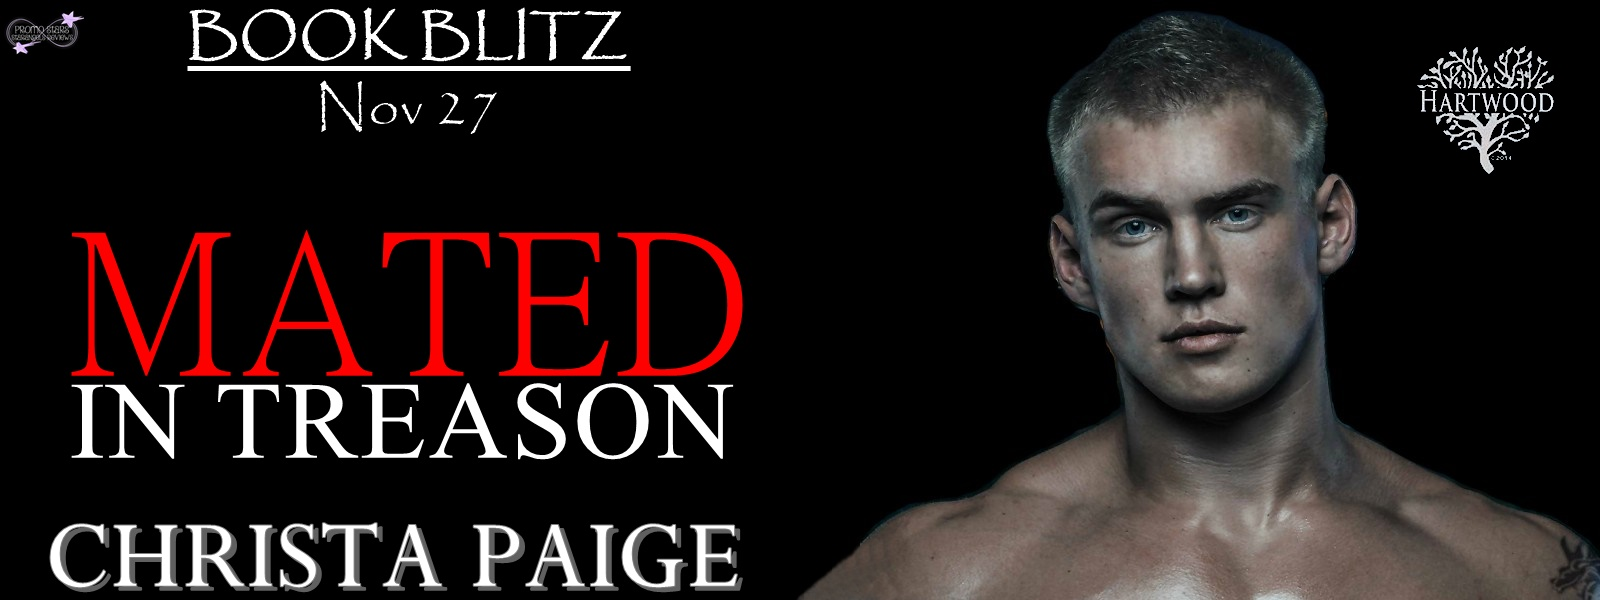 Mated in Treason Book Blitz